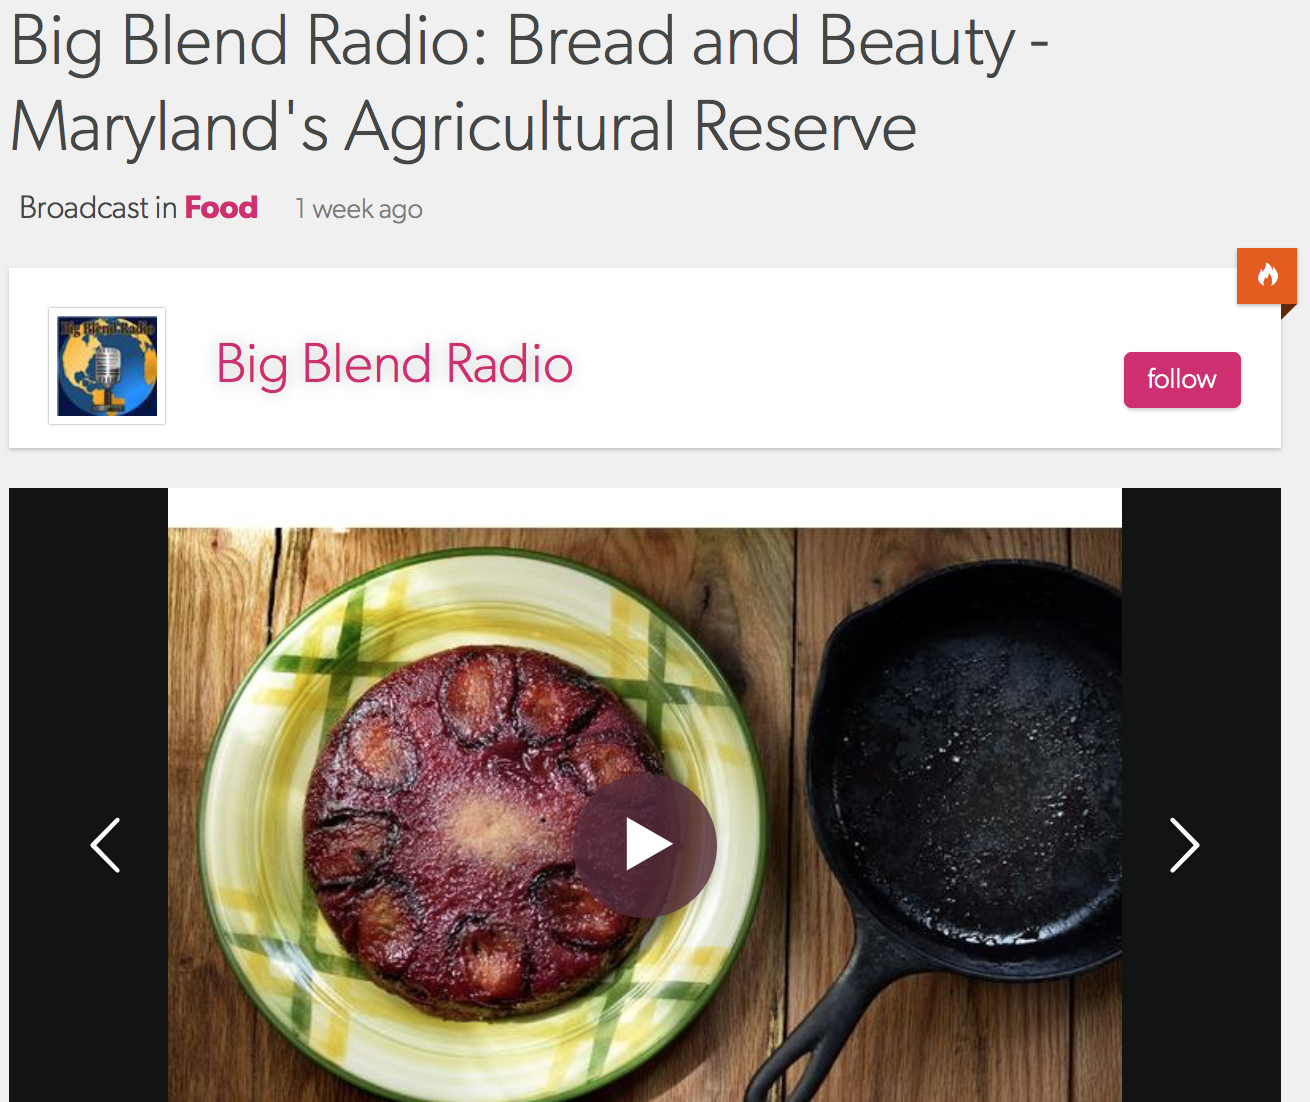 Bread & Beauty on the Big Blend - exploring America's great open spaces, includingMontgomery County's Agricultural Reserve